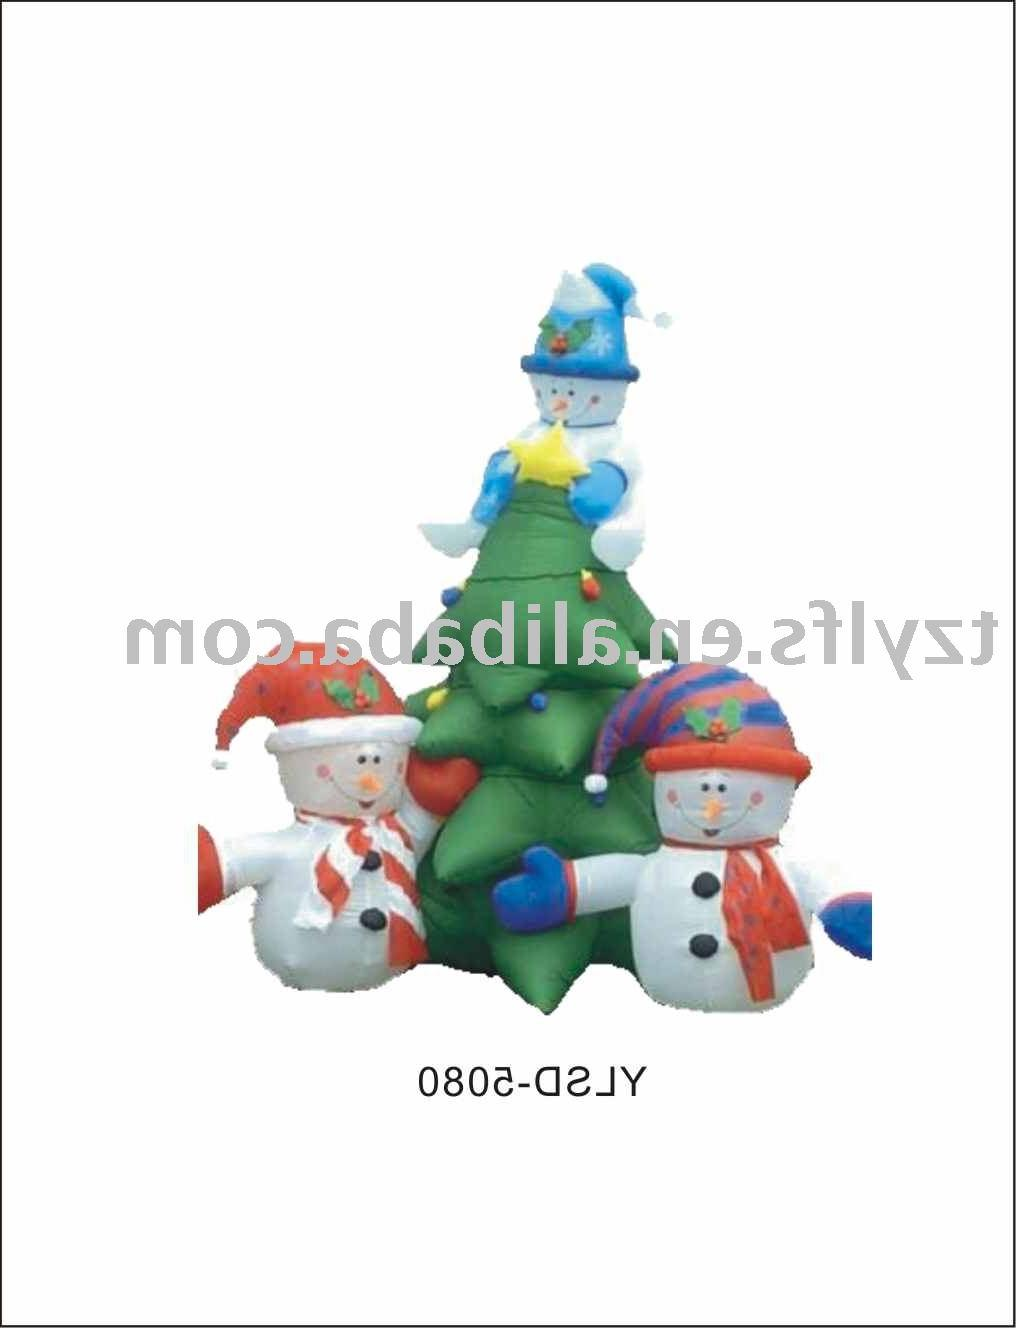 Inflatable snowman christmas gift. Inquire now. Inquire now